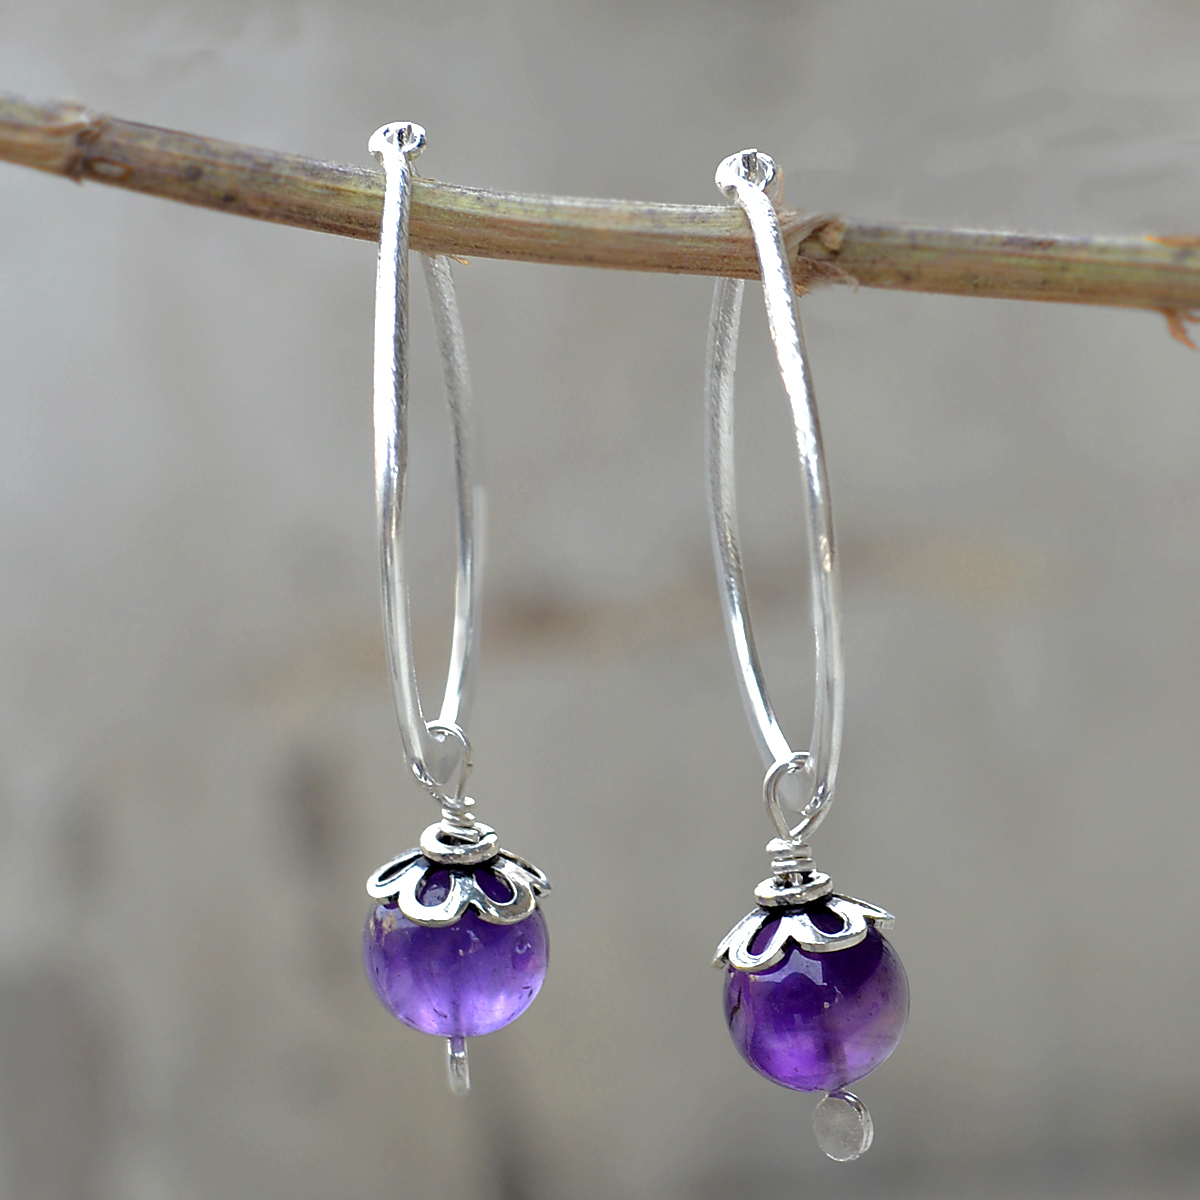 8 mm Round Amethyst Gemstone Jaipur Rajasthan India 925 Sterling Silver Earring Handmade Jewelry Manufacturer